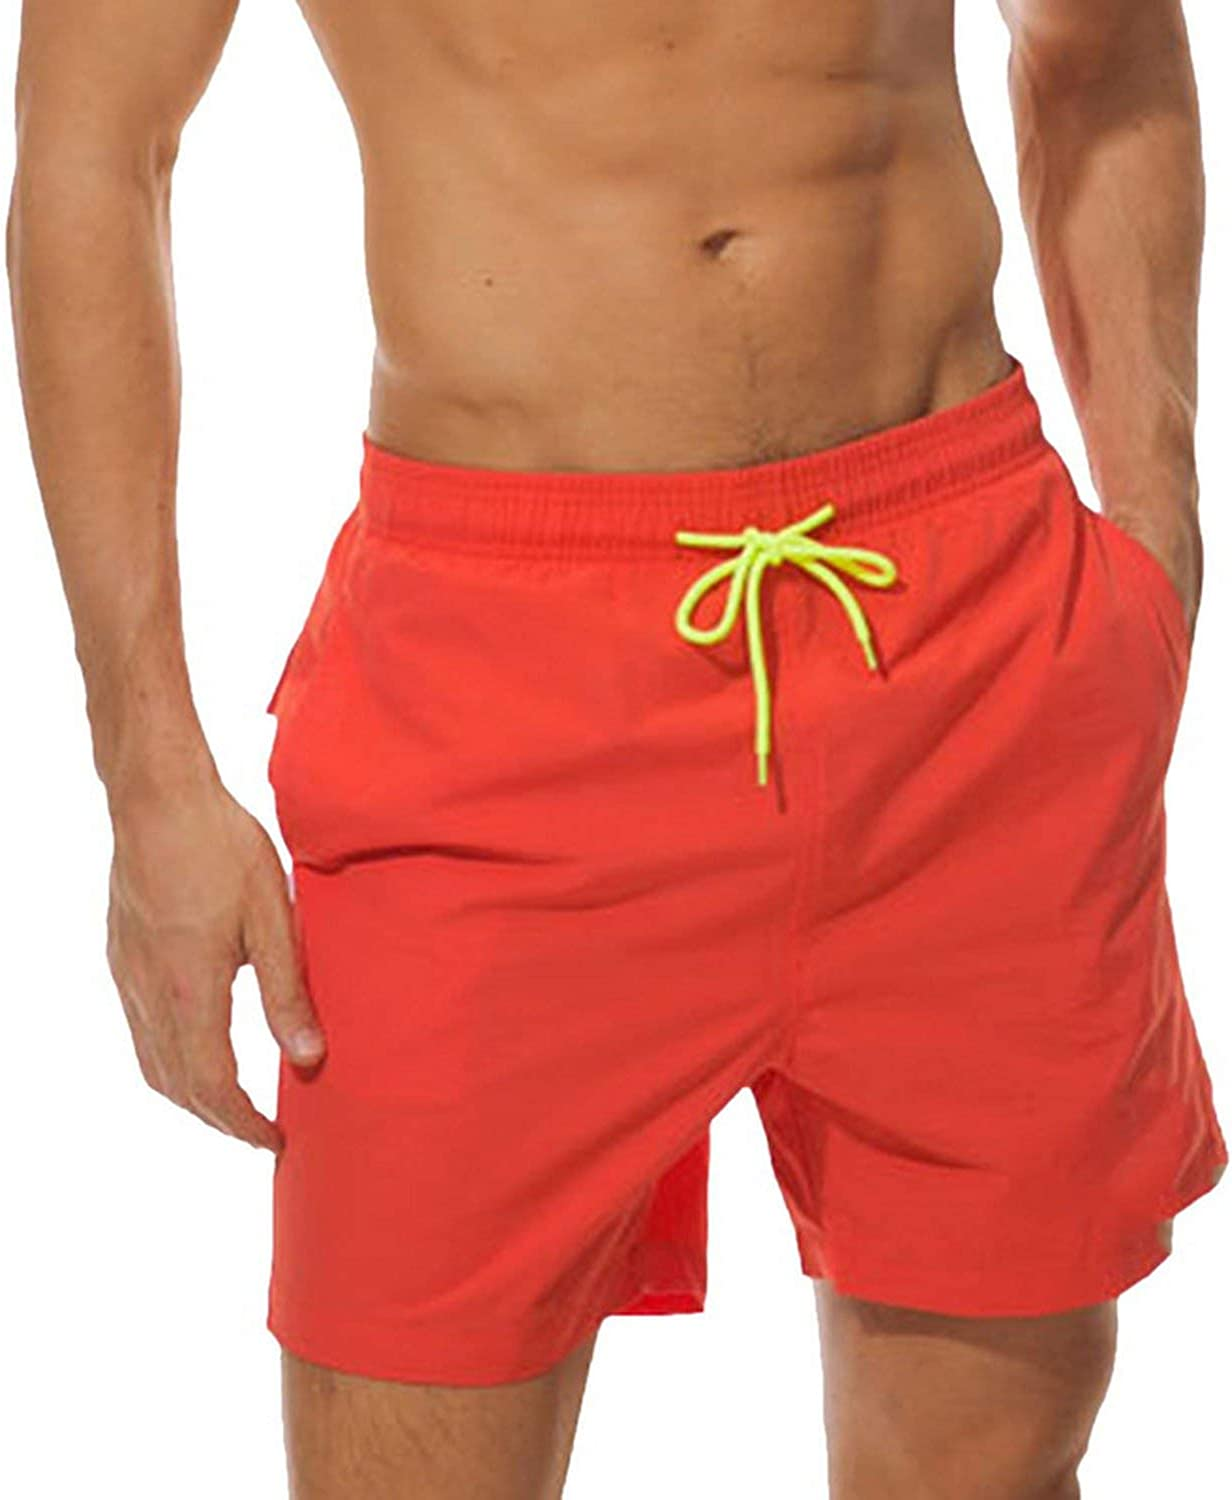 Axd-Home Men Beach Shorts Summer Water Sports Swimming Trunks